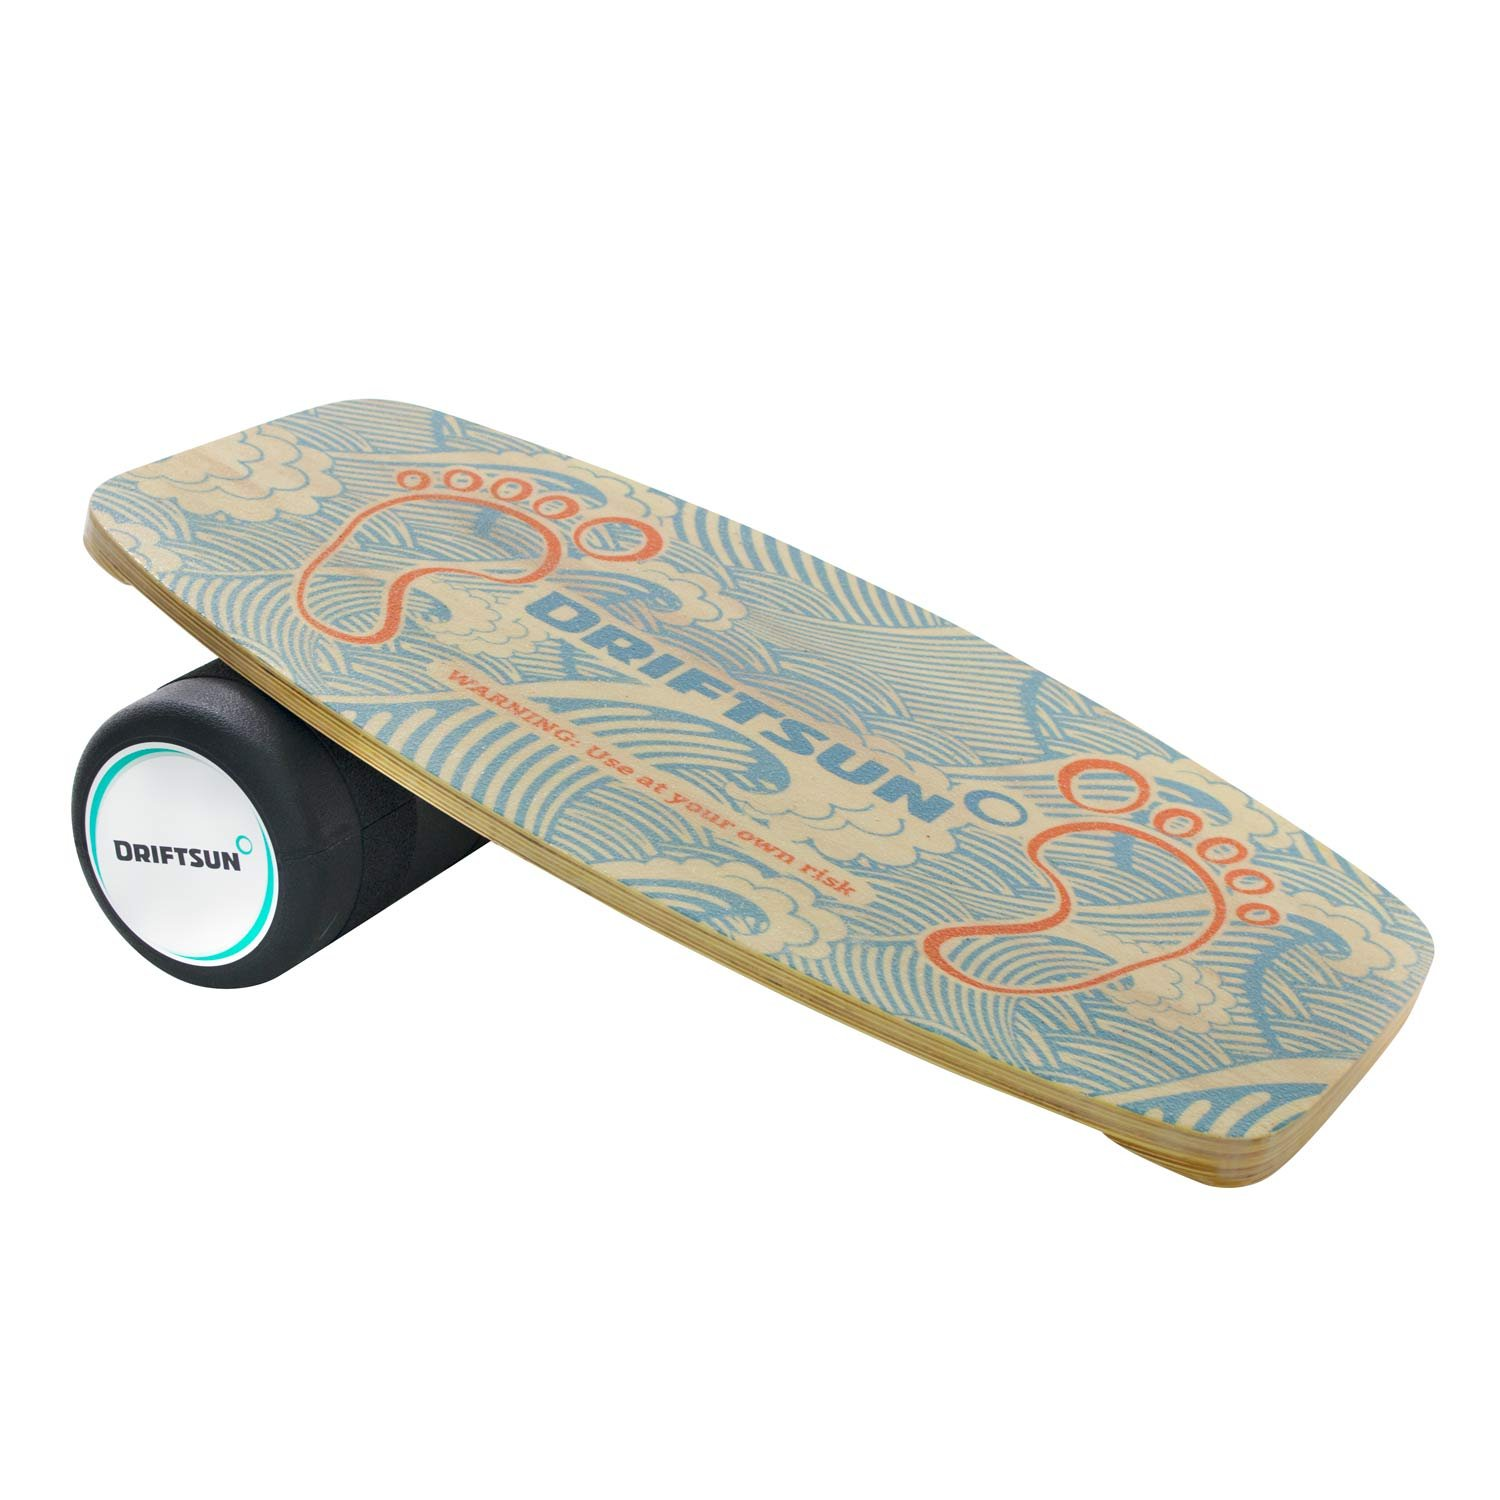 Driftsun Wooden Balance Board - Premium Balance Trainer with Roller for Surf, SUP, Wakesurf, Wakeskate, Ski, Snowboard and Skateboarding.